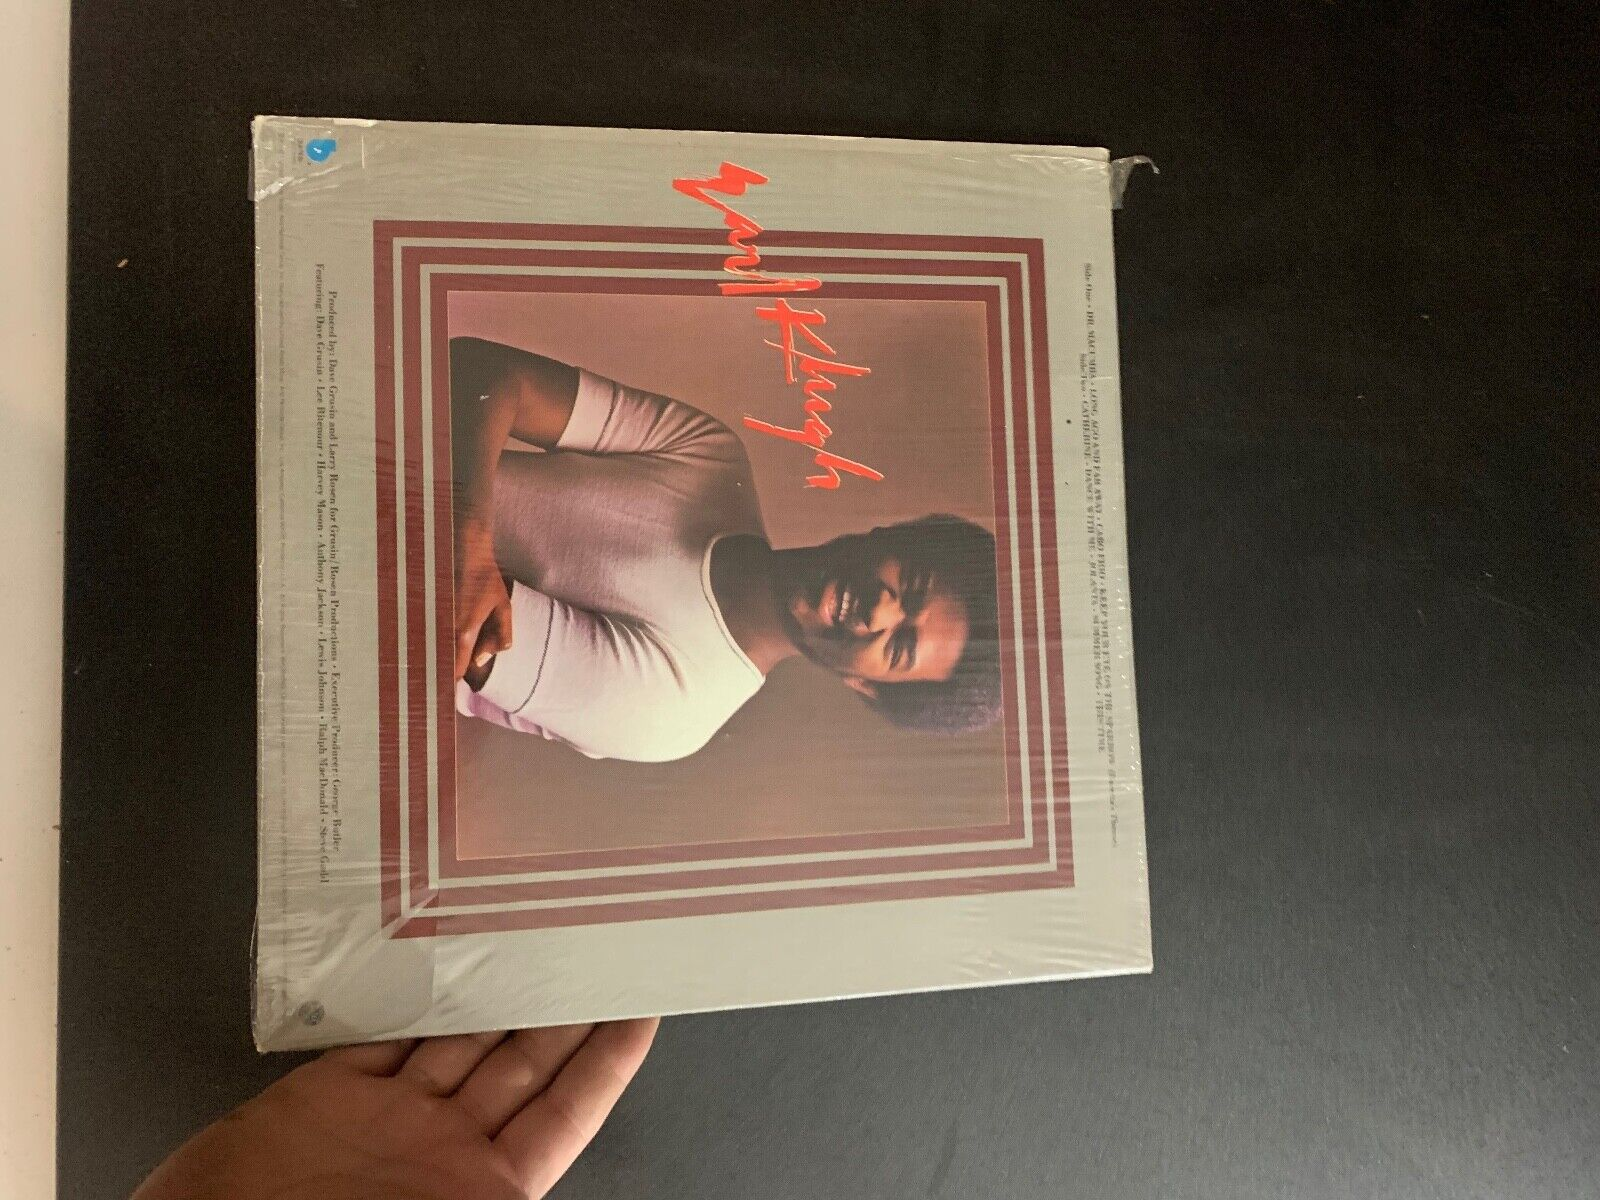 LP RECORD - EARL KLUGH - FINGER PAINTINGS BLUE NOTE RECORDS - $9.99